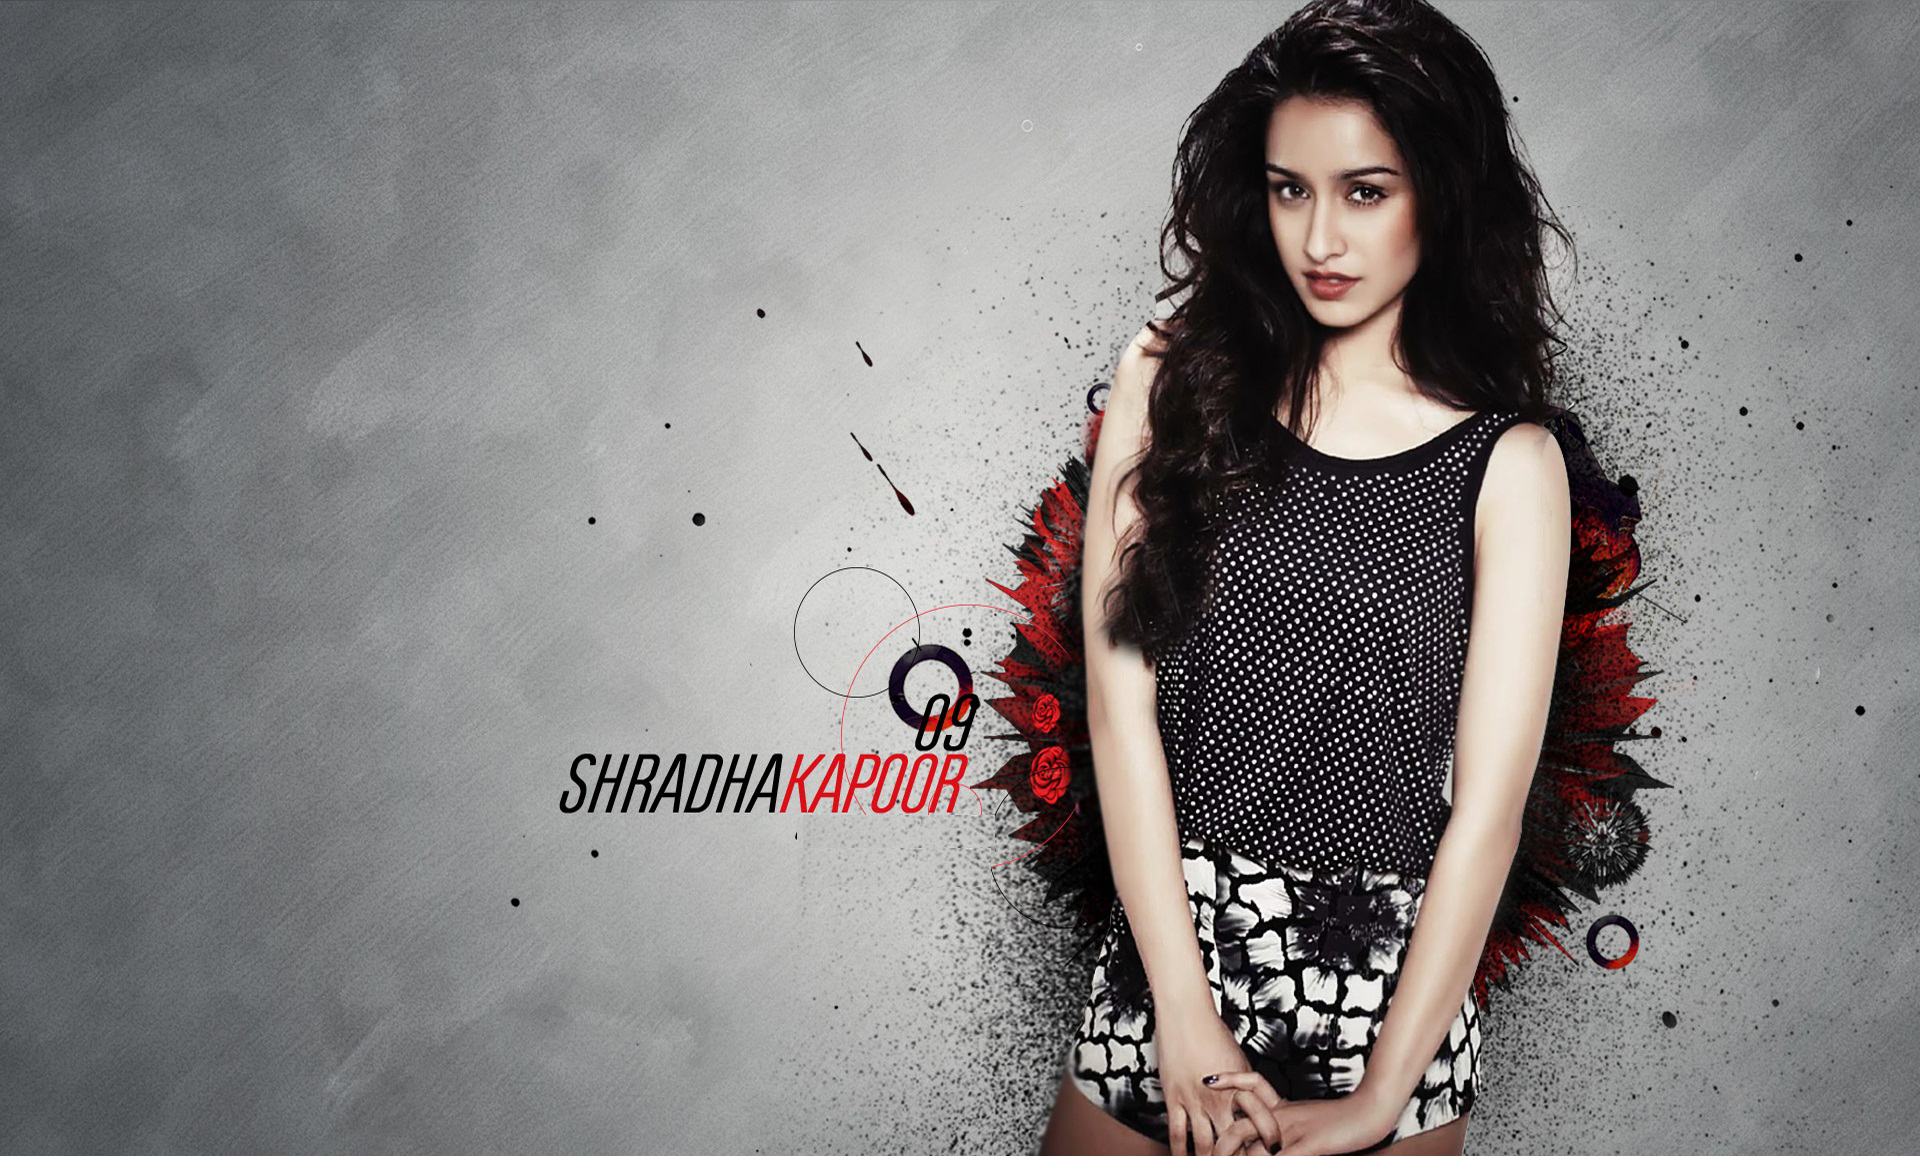 download shraddha kapoor latest photoshoot 7680x4320 resolution